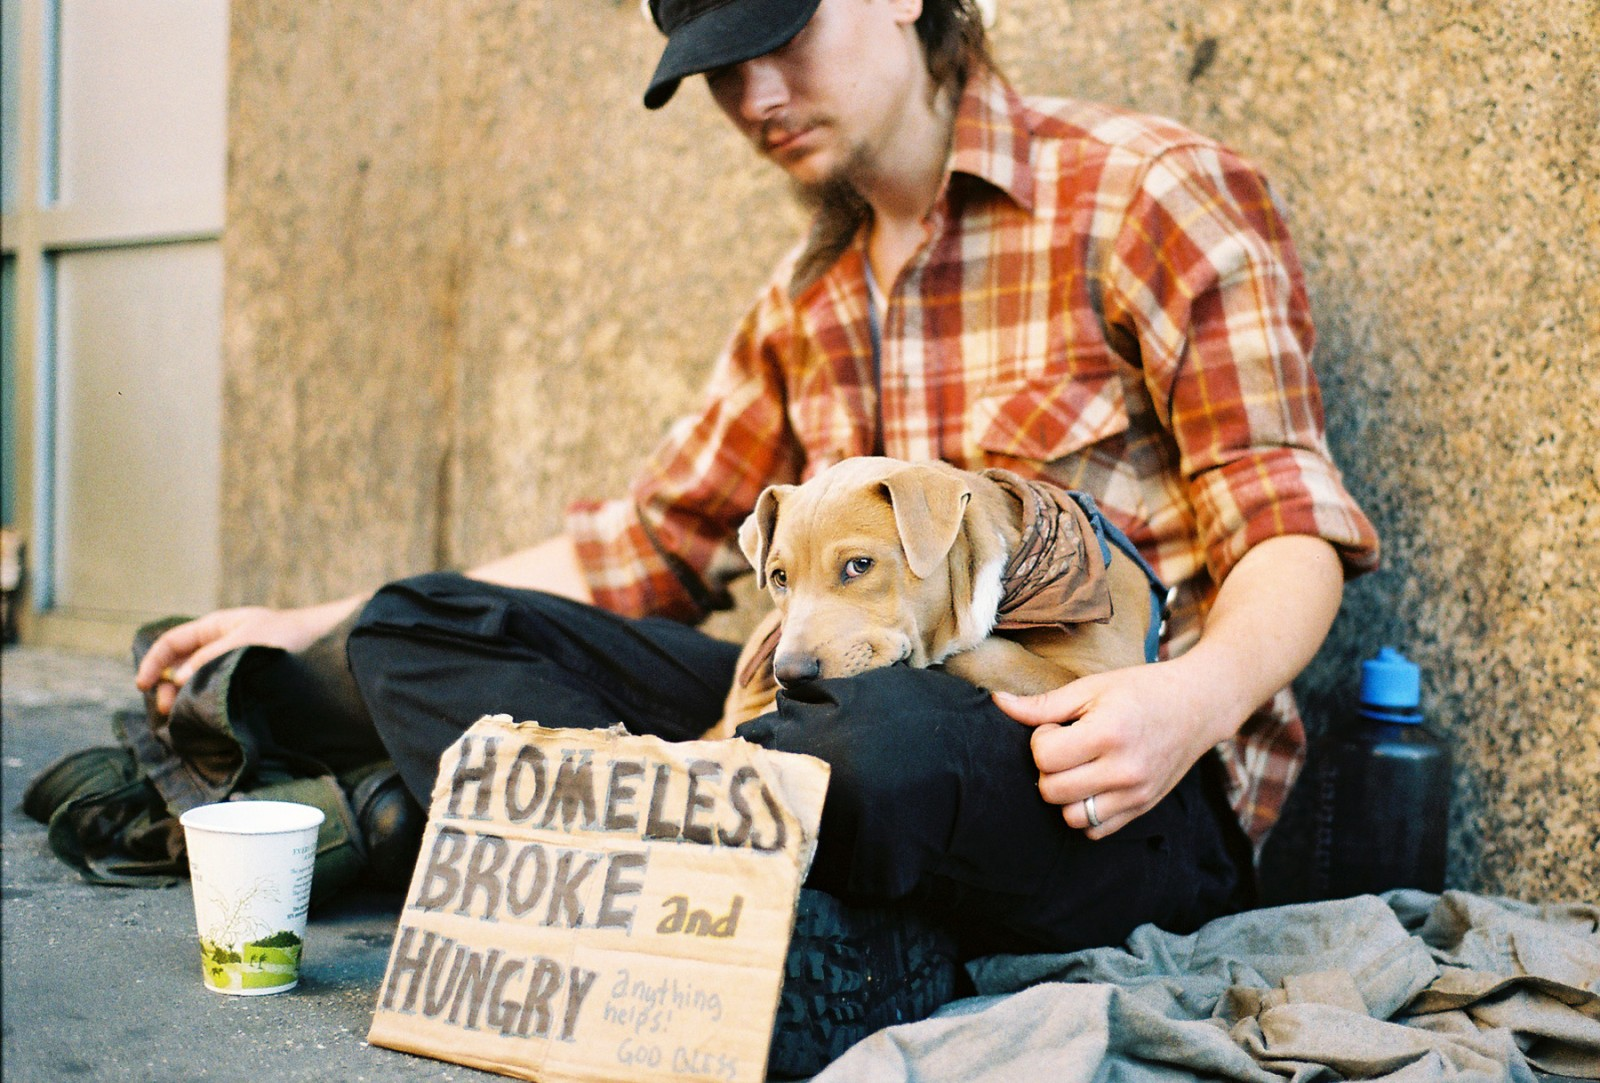 we should help homeless people in the united states and not view them as a problem to society